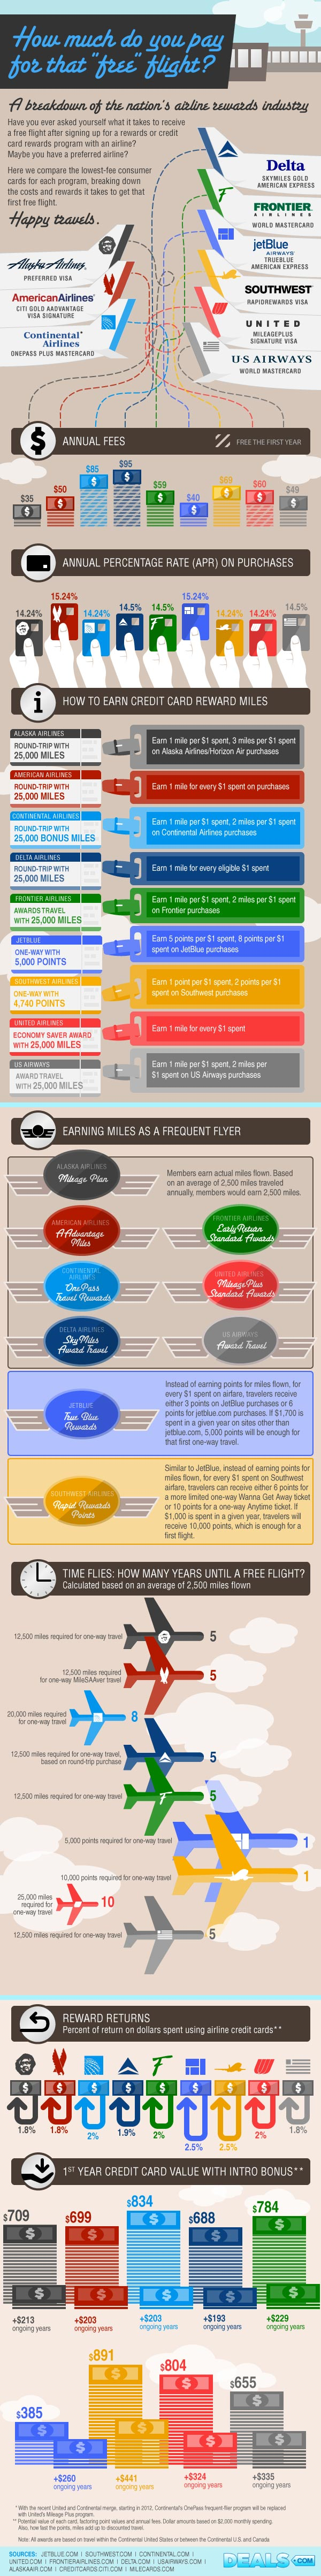 Infographic: Airline Frequent Flyer Rewards